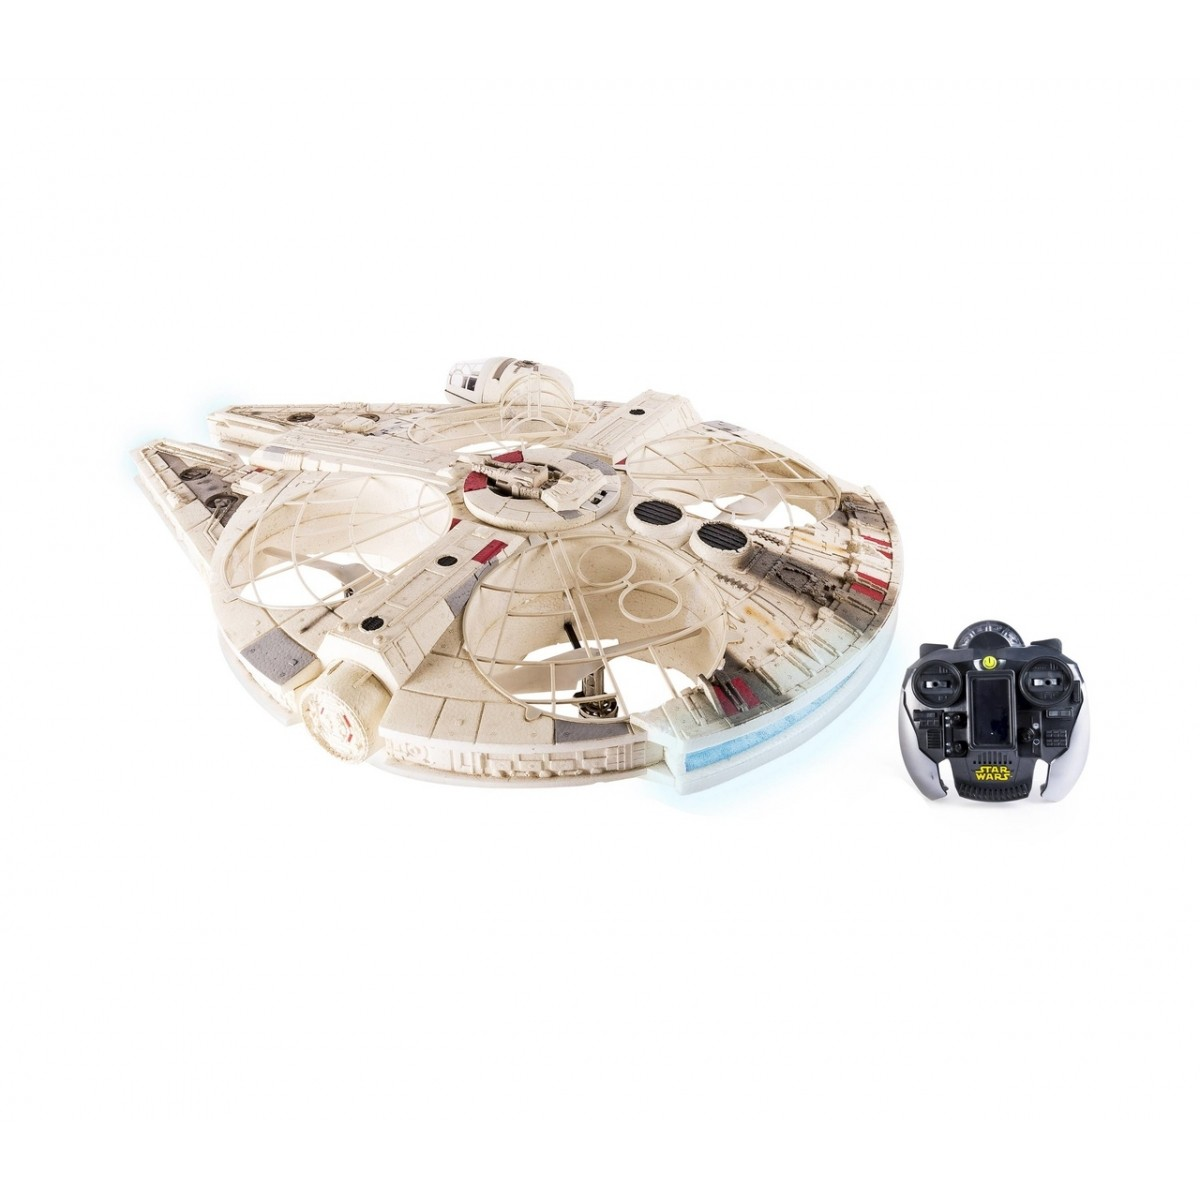 Air Hogs Drone Millennium Falcon XL: Star Wars com Controle remoto